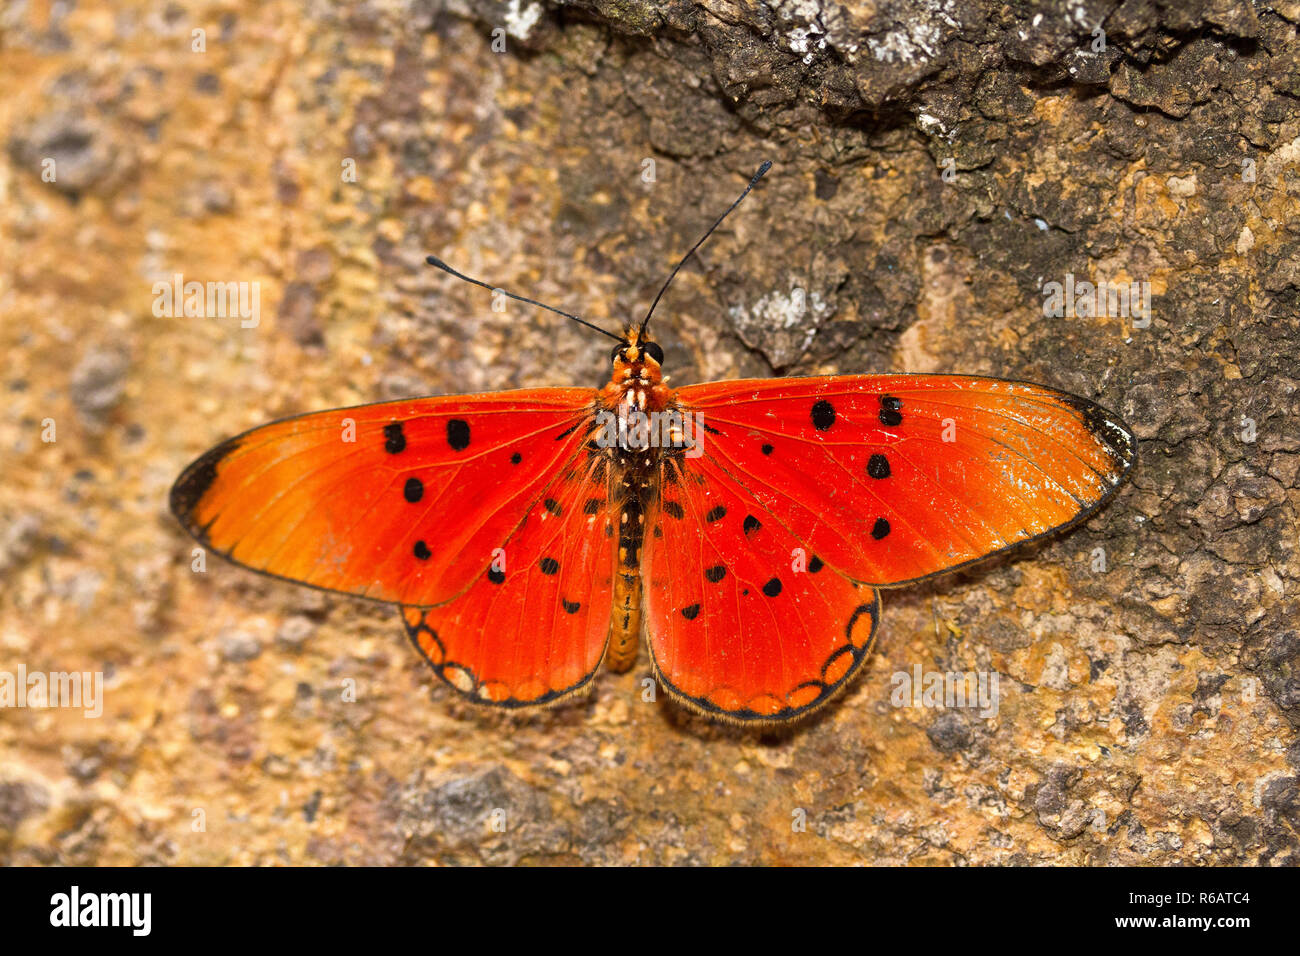 The Fiery Acarea is one of the more brightly coloured of this common butterfly family, part of the brush-footed butterflies, that despite being vividl - Stock Image